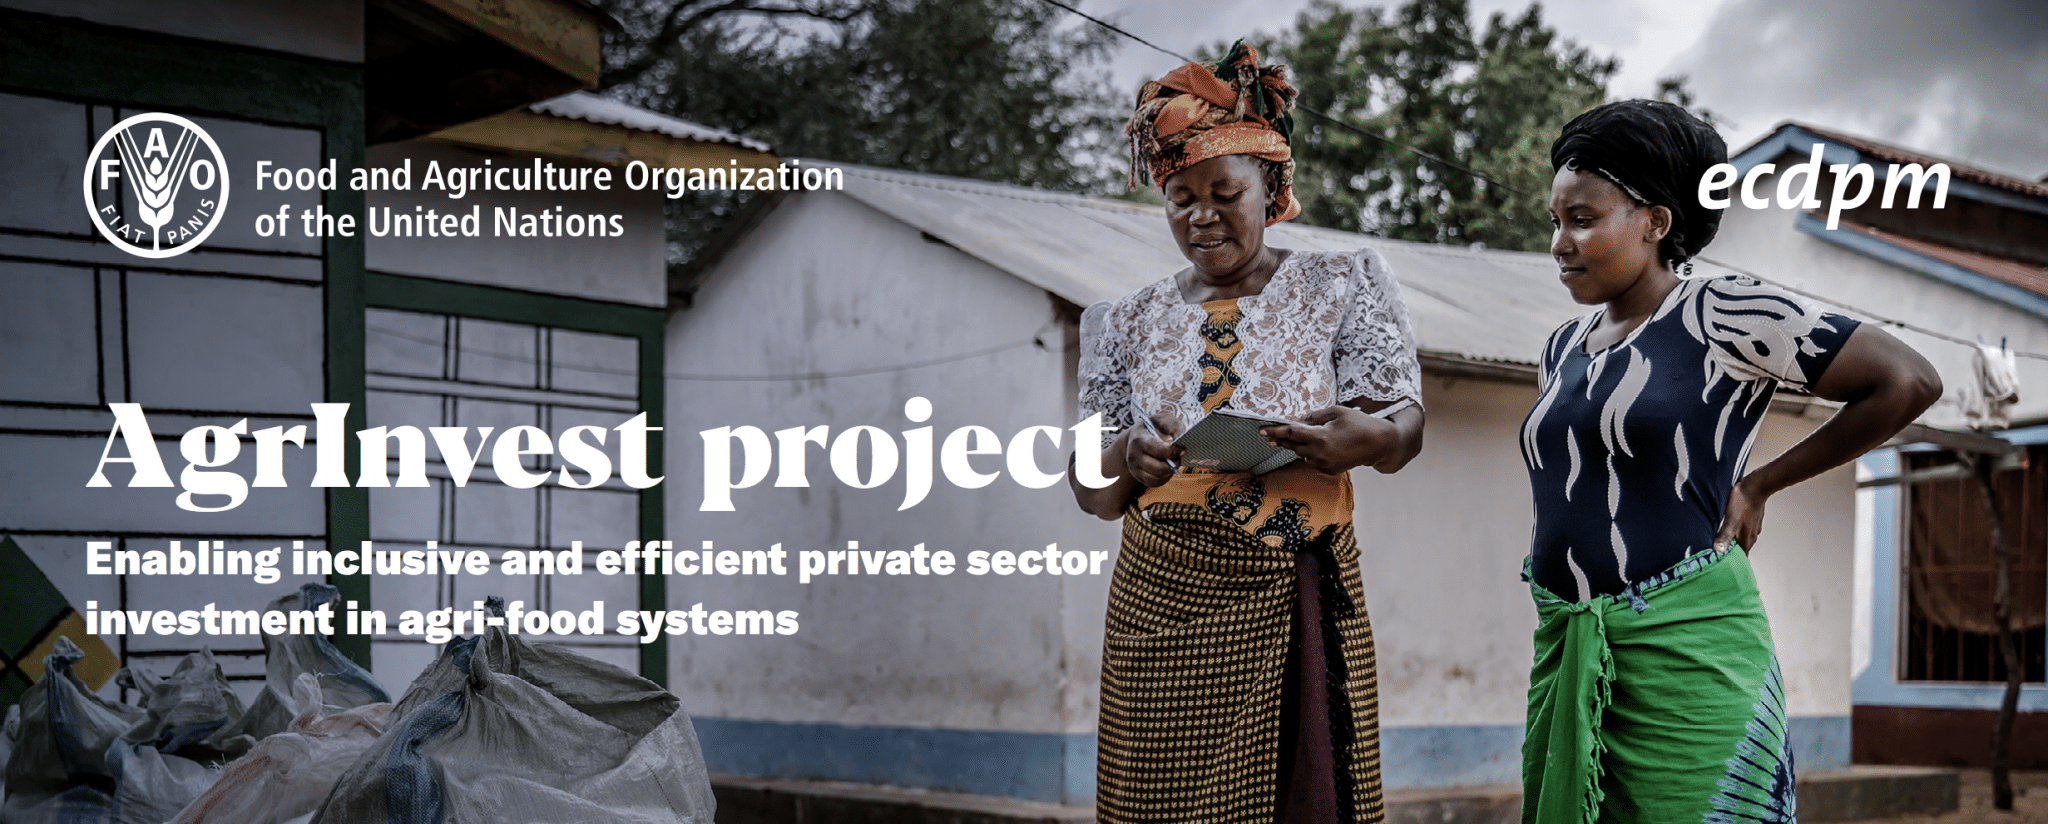 AgrInvest: Enabling inclusive and efficient private sector investment in agri-food systems